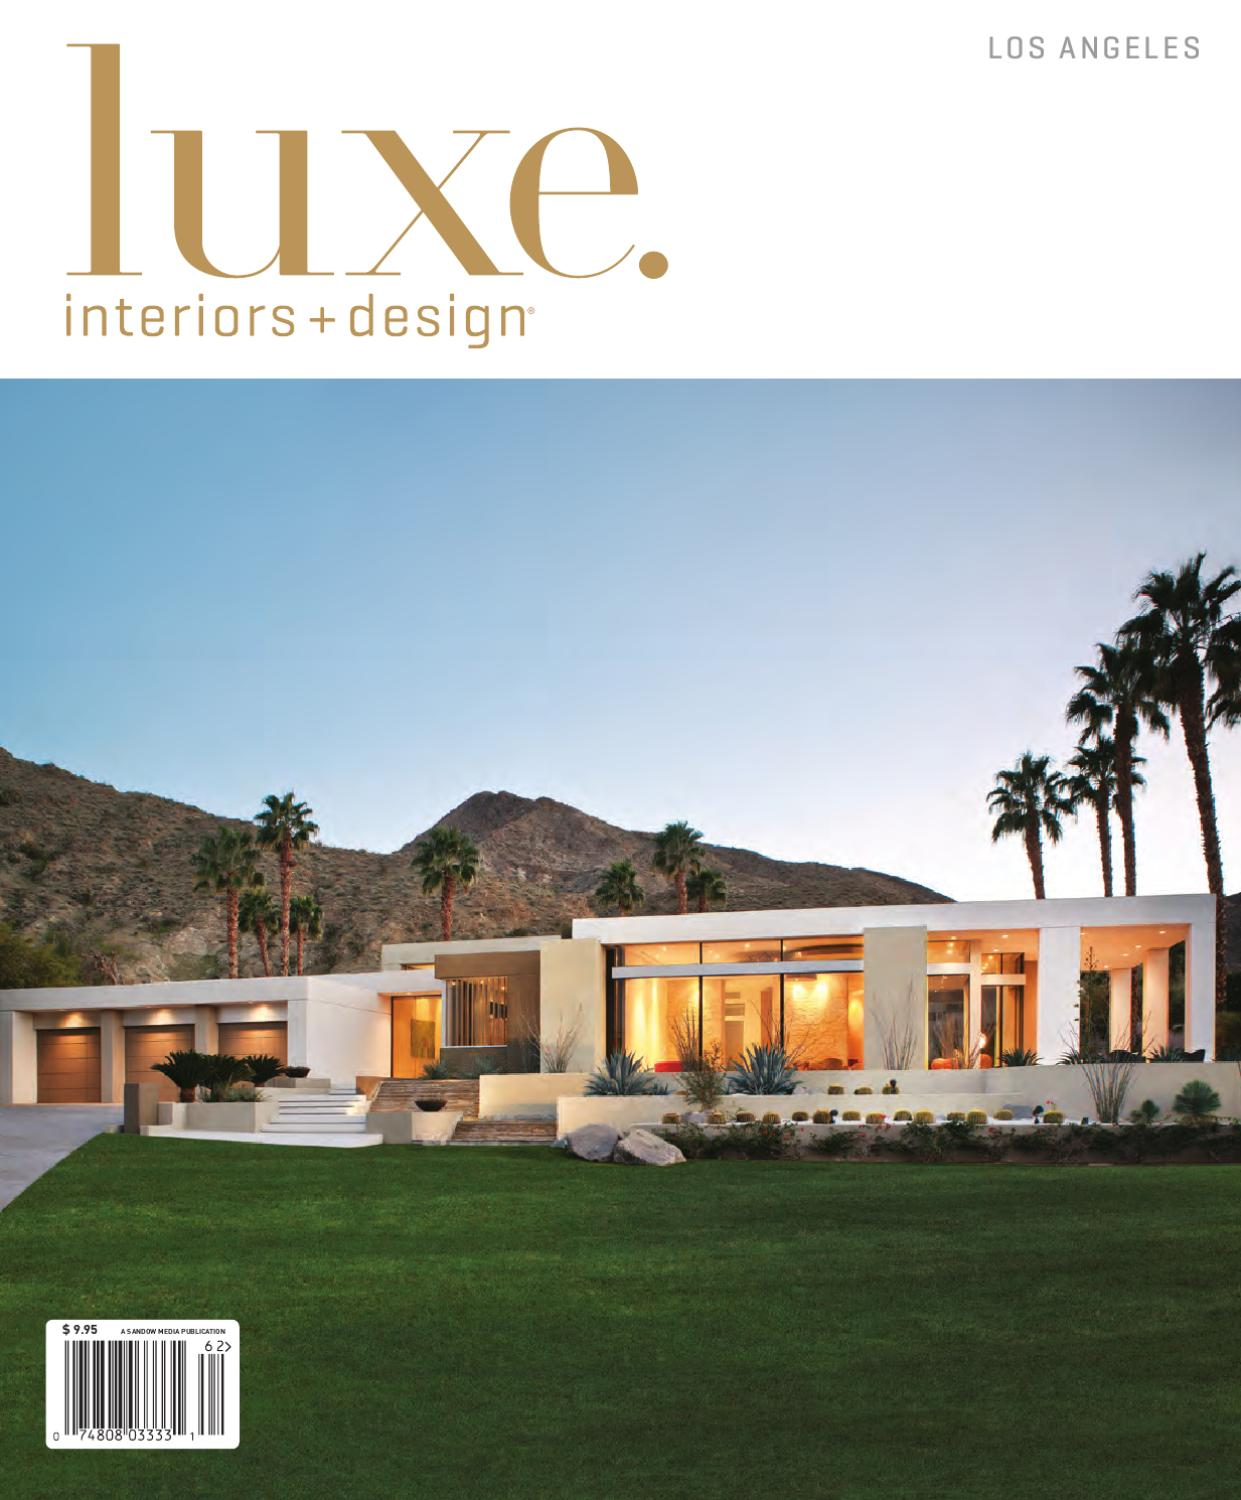 Luxe interior design los angeles by sandow media issuu for Luxe interieur design